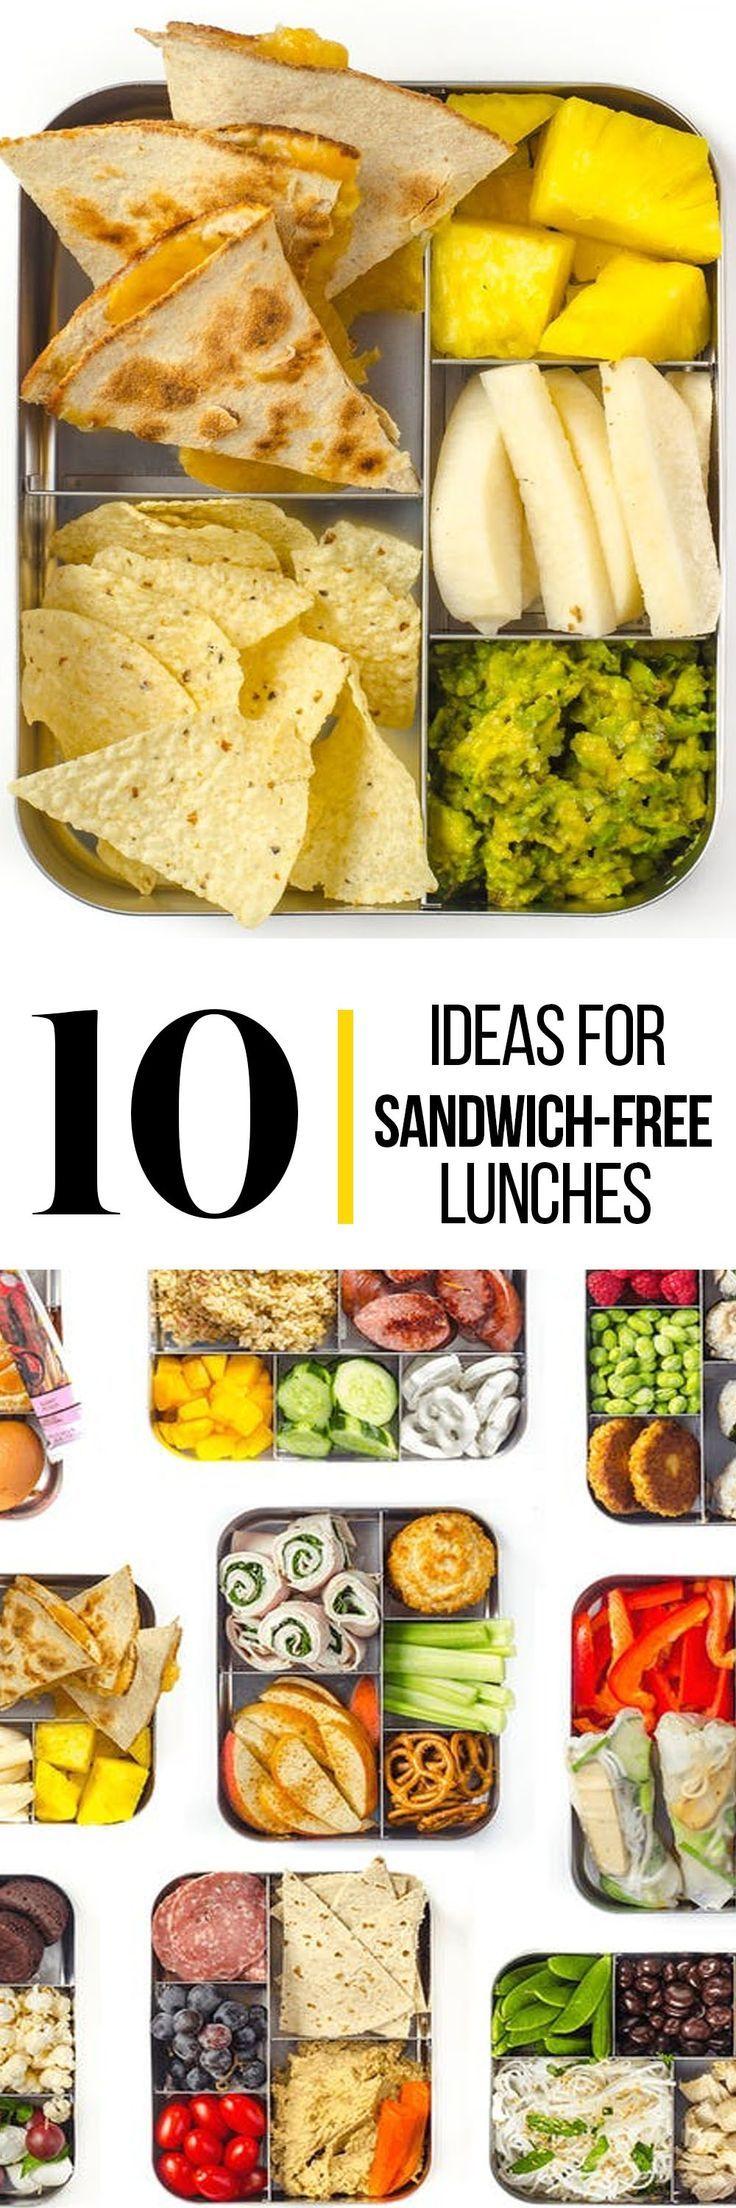 The lunchtime sandwich may be as American as the flag itself, but slapping the same smears onto bread — day after day, week after week — can leave kids and parents a little bored. Here are some sandwich-free lunches for you to think about. | https://lomejordelaweb.es/